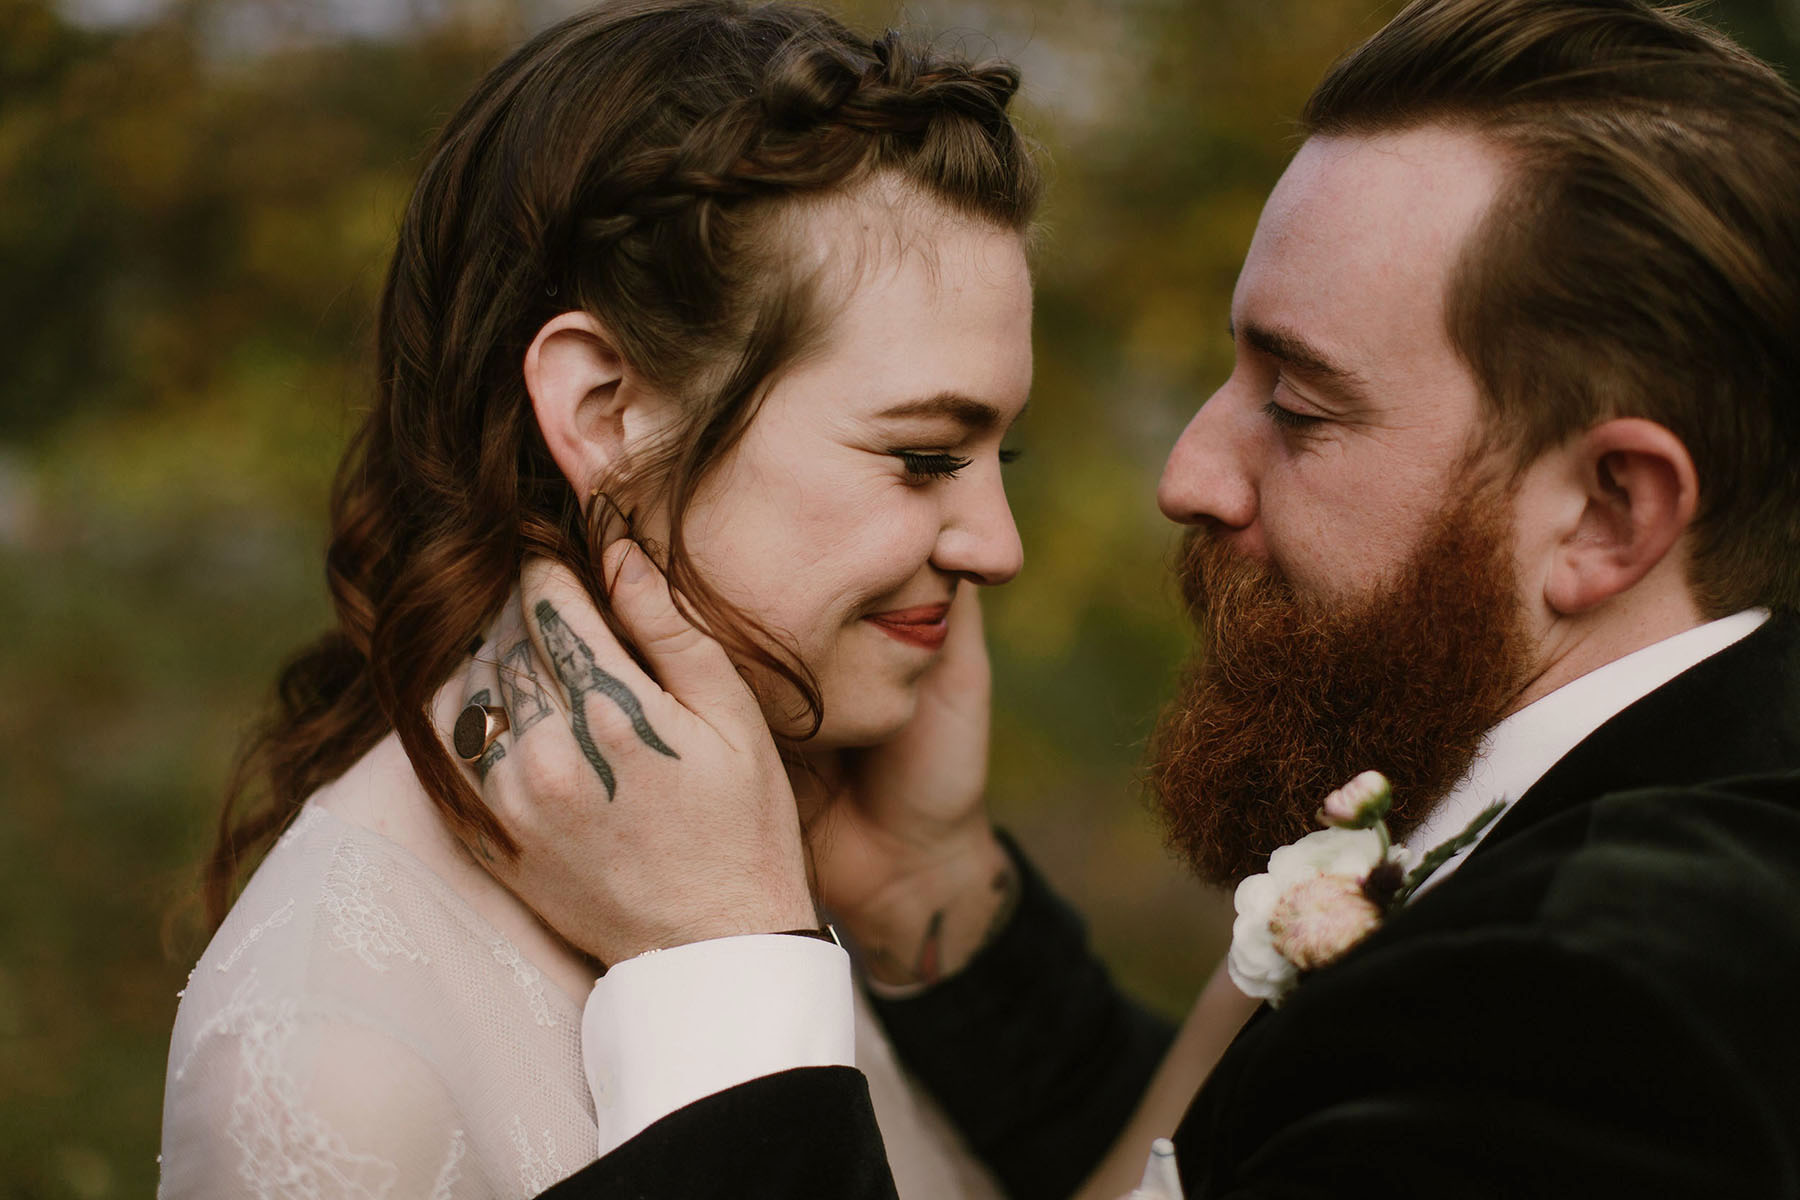 A man with a tux and beard holds the face of a smiling brunette woman in a wedding dress in a Sarah Gormley photo